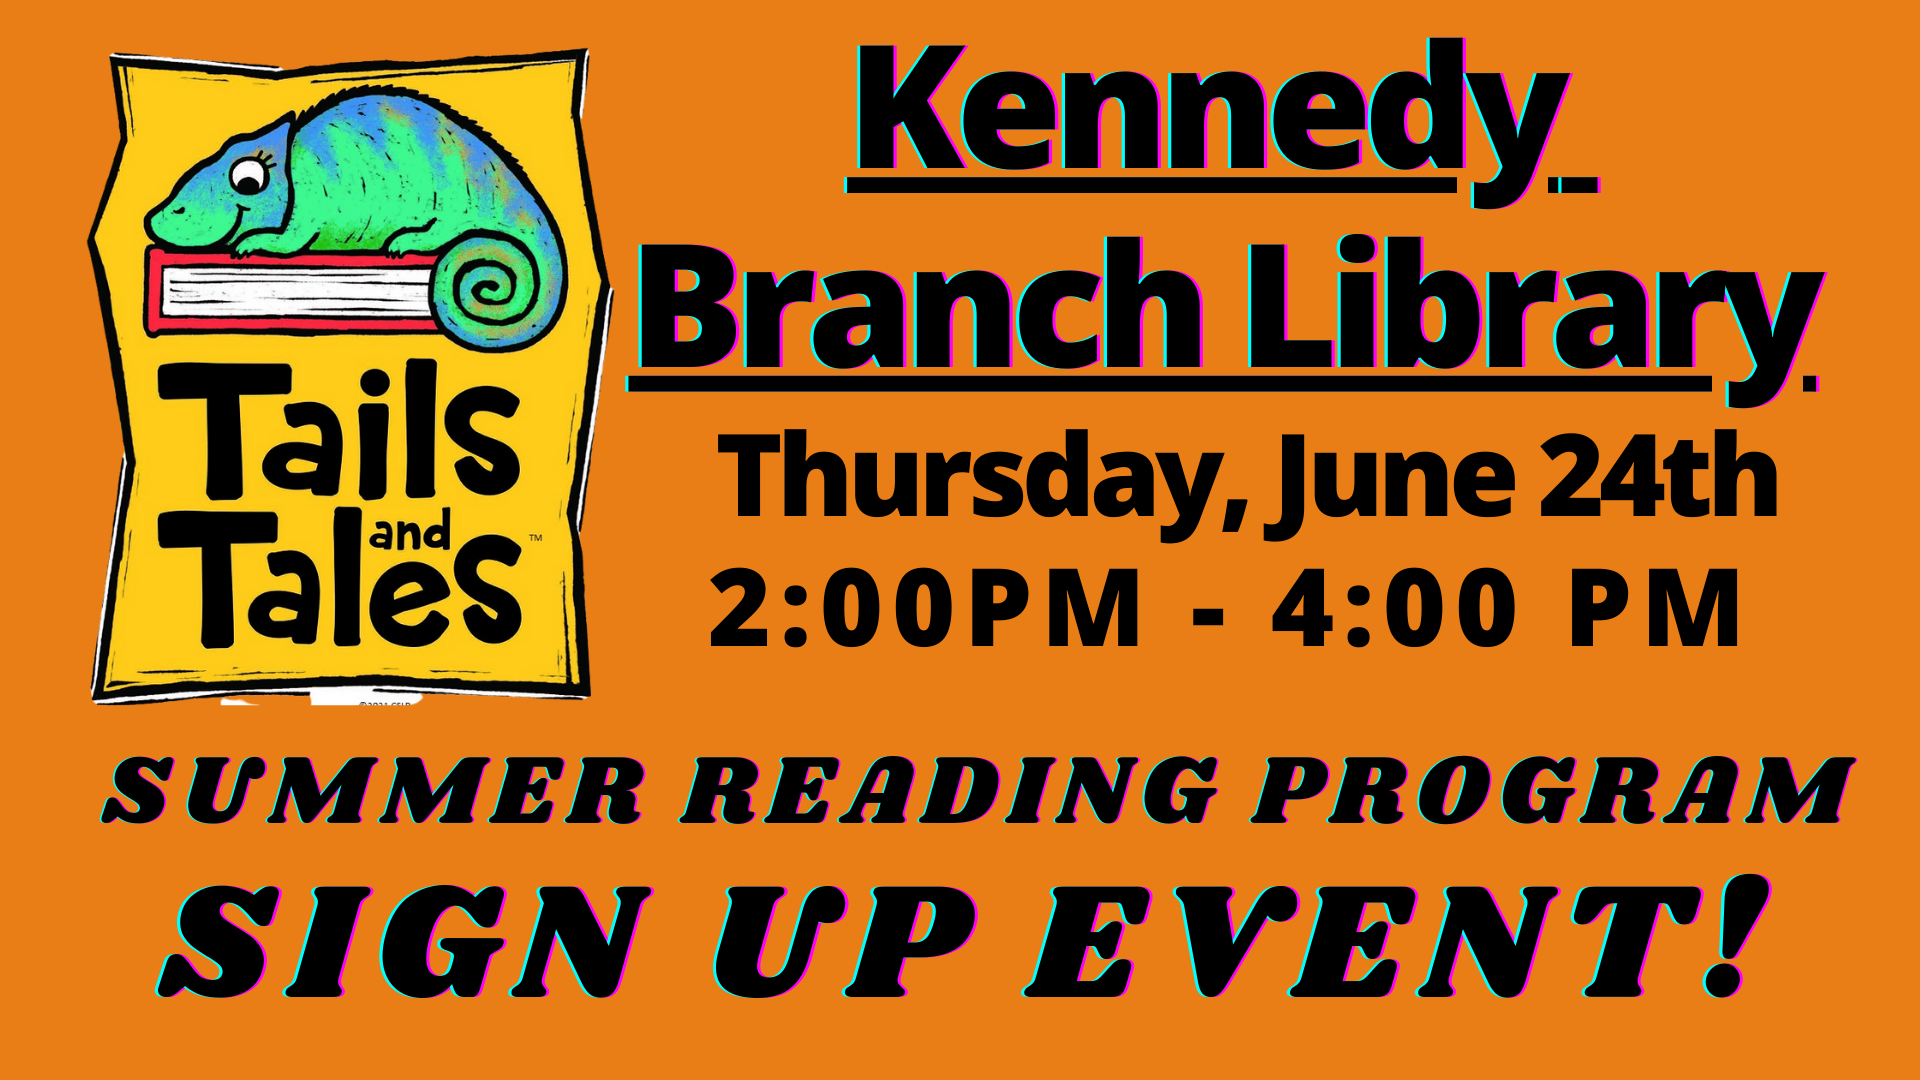 summer reading sign up event - kennedy branch library